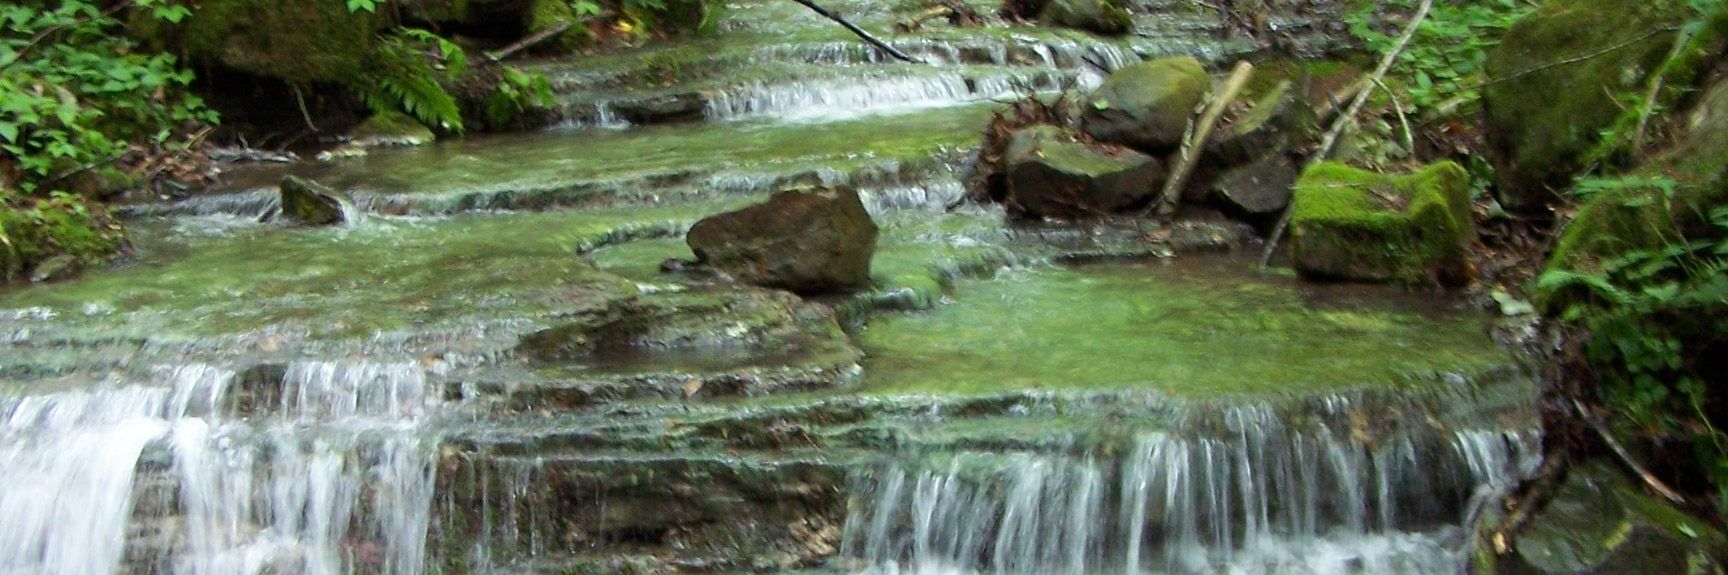 Marion County Park, Jasper, Tennessee, United States of America